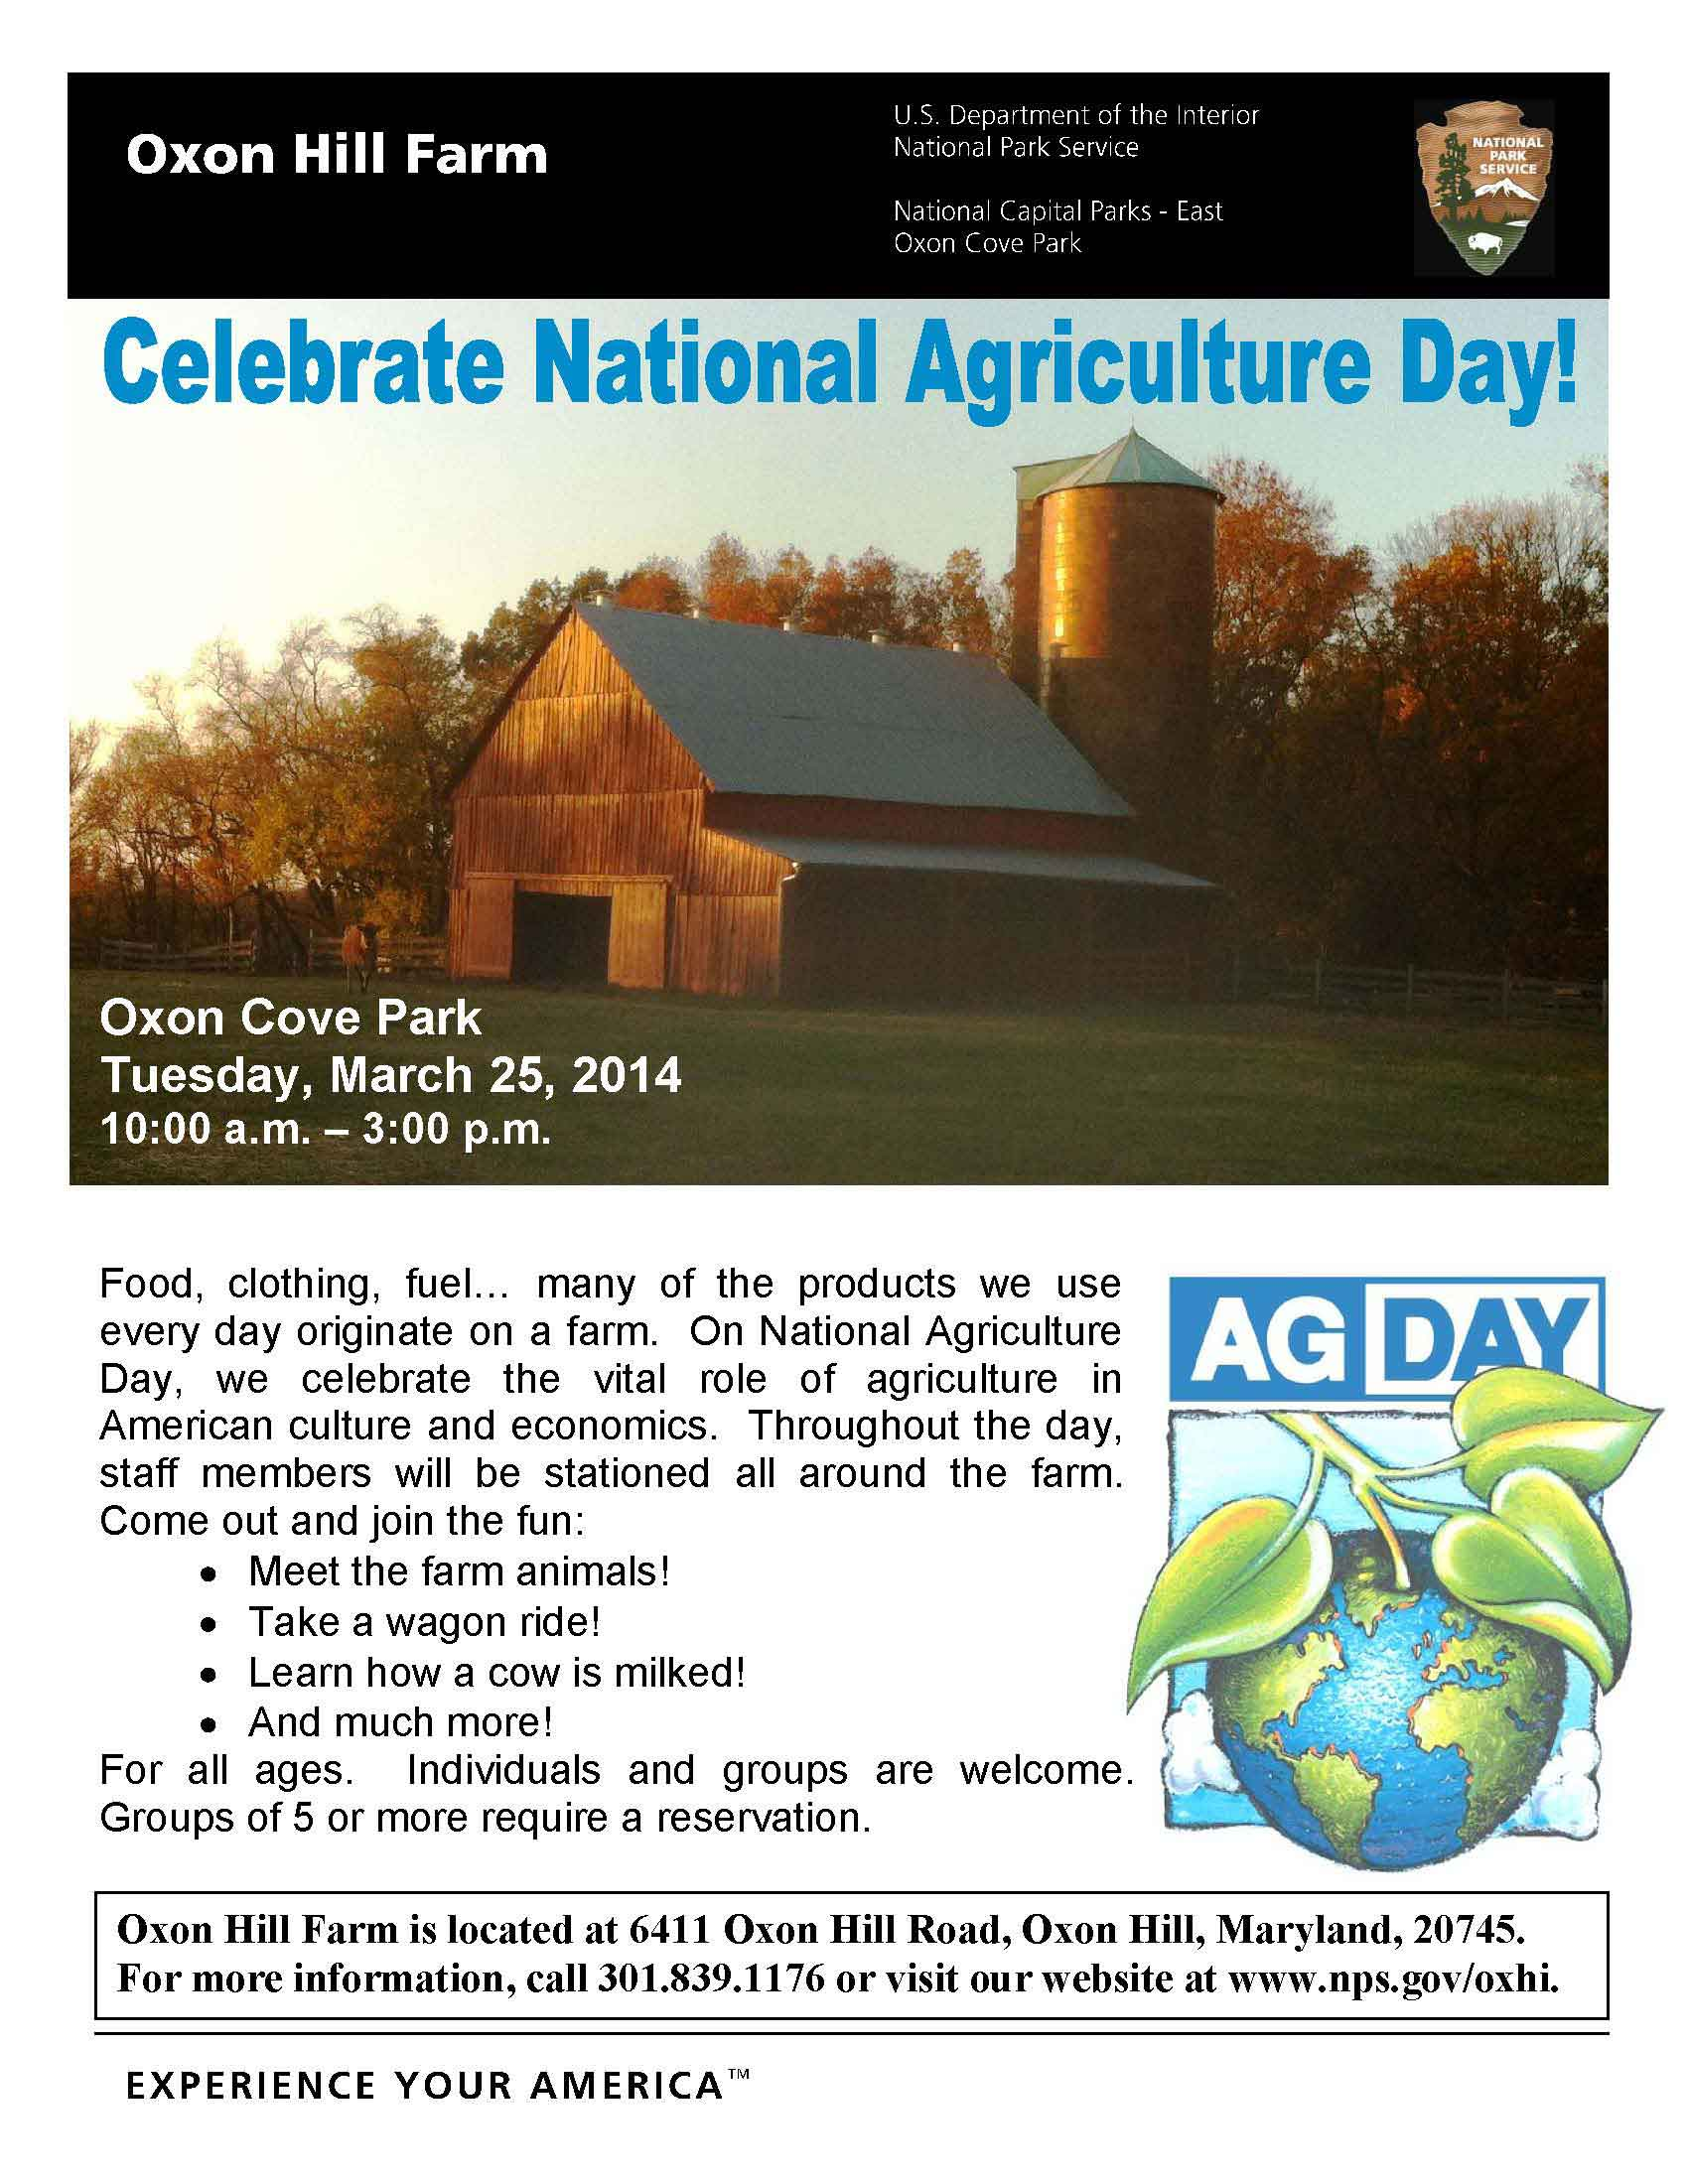 Celebrate National Agriculture Day Tuesday March 25th